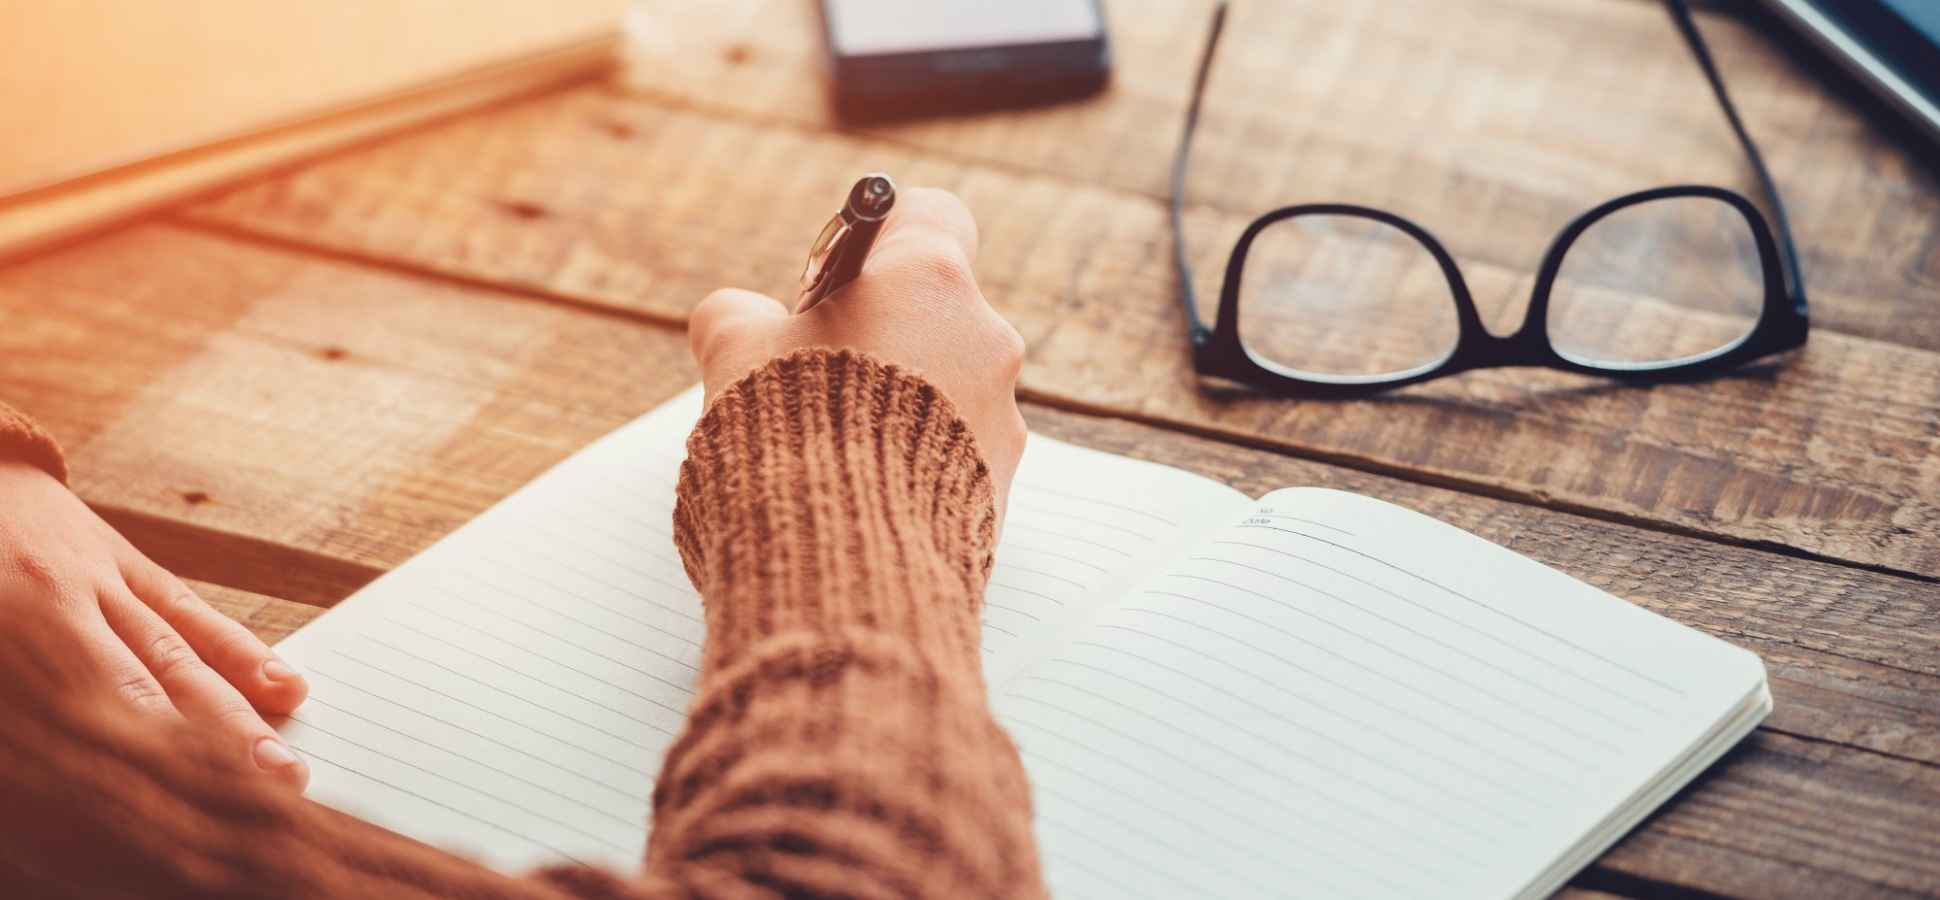 Keeping A Daily Journal Could Change Your Life.